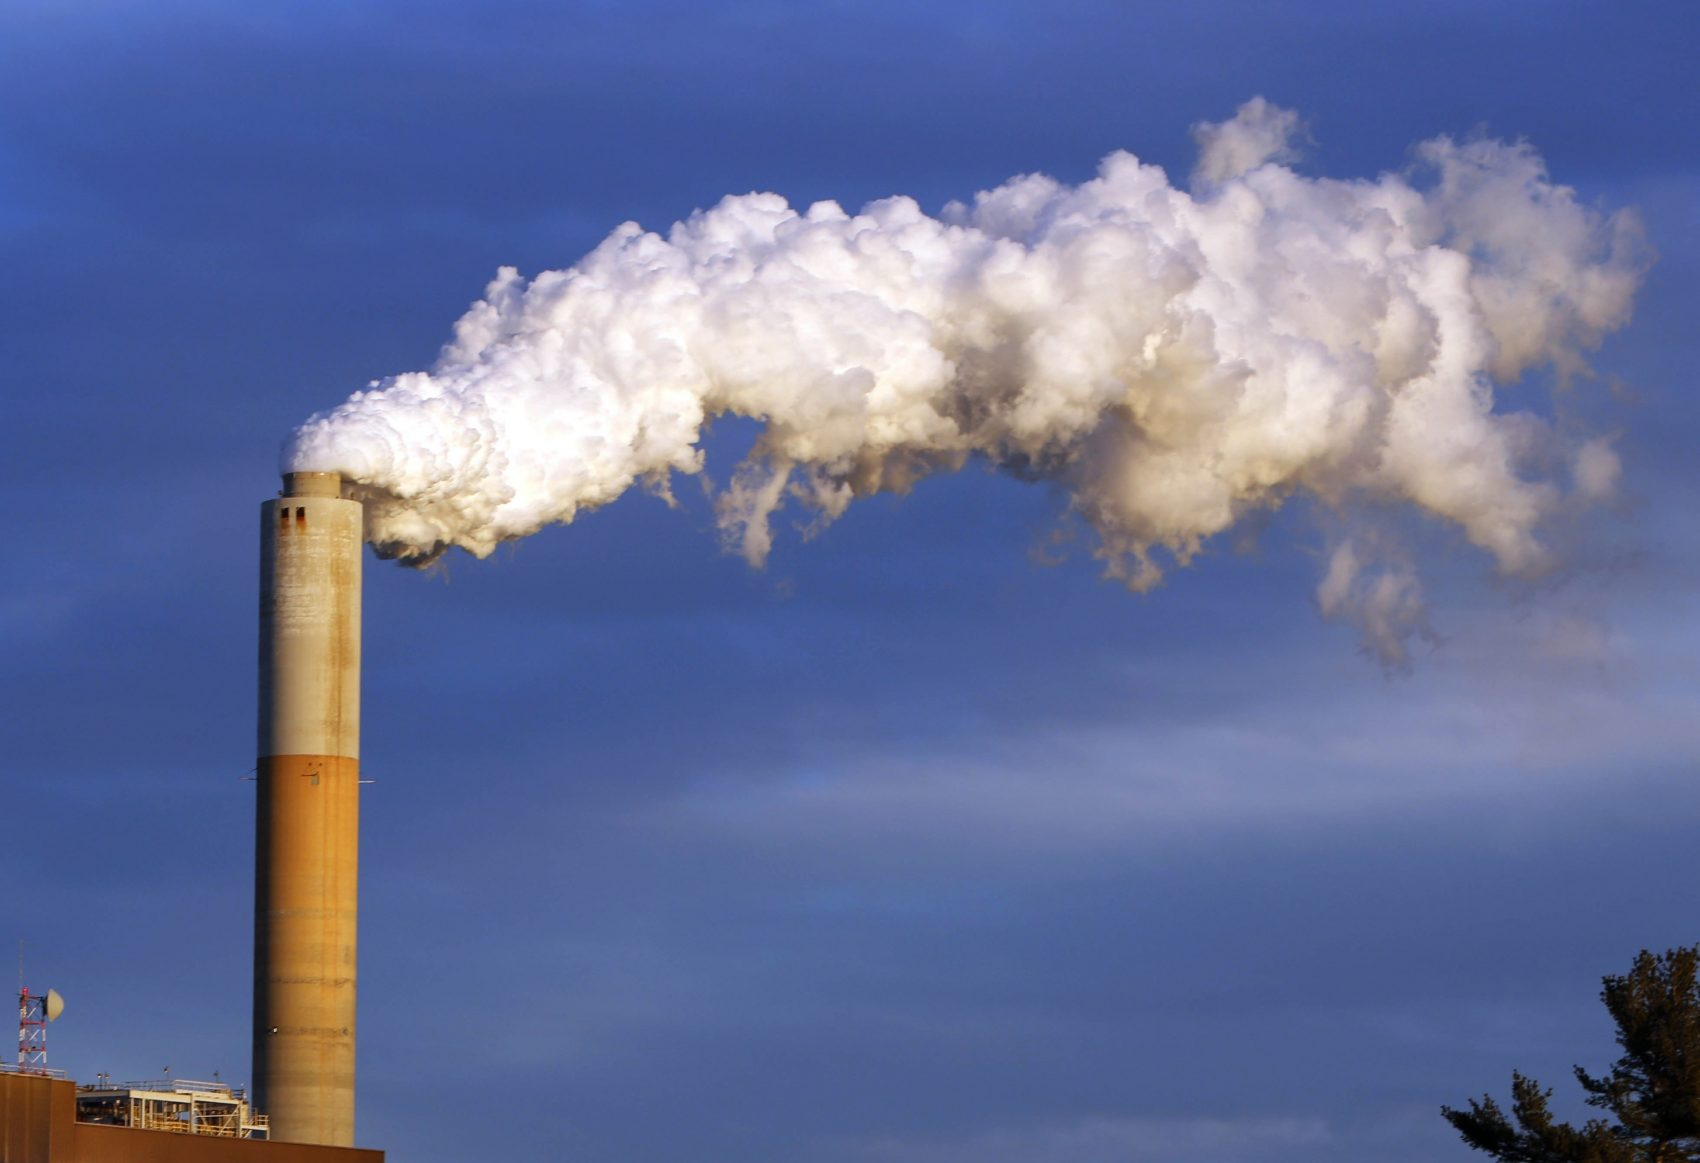 Economists overwhelmingly would vote to tax the carbon content of fuels to curtail climate change. Could the carbon tax win over the climate-change-denying troglodytes in the GOP? Pictured: In this Jan. 20, 2015 file photo, steam billows from the chimney of a coal-fired Merrimack Station in Bow, N.H. (Jim Cole/AP)